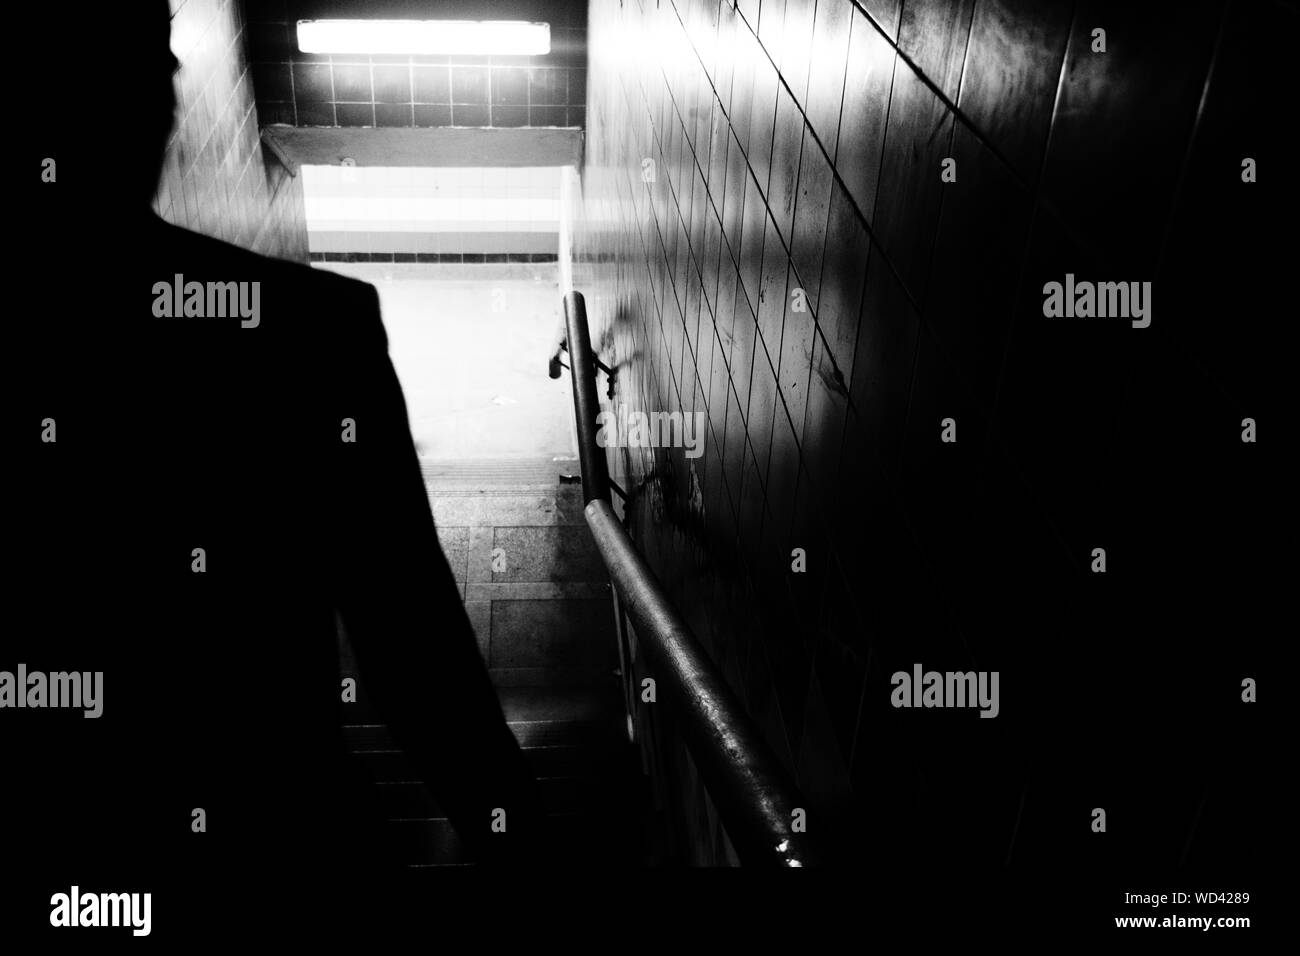 Silhouette Man Walking On Steps In Tunnel Stock Photo